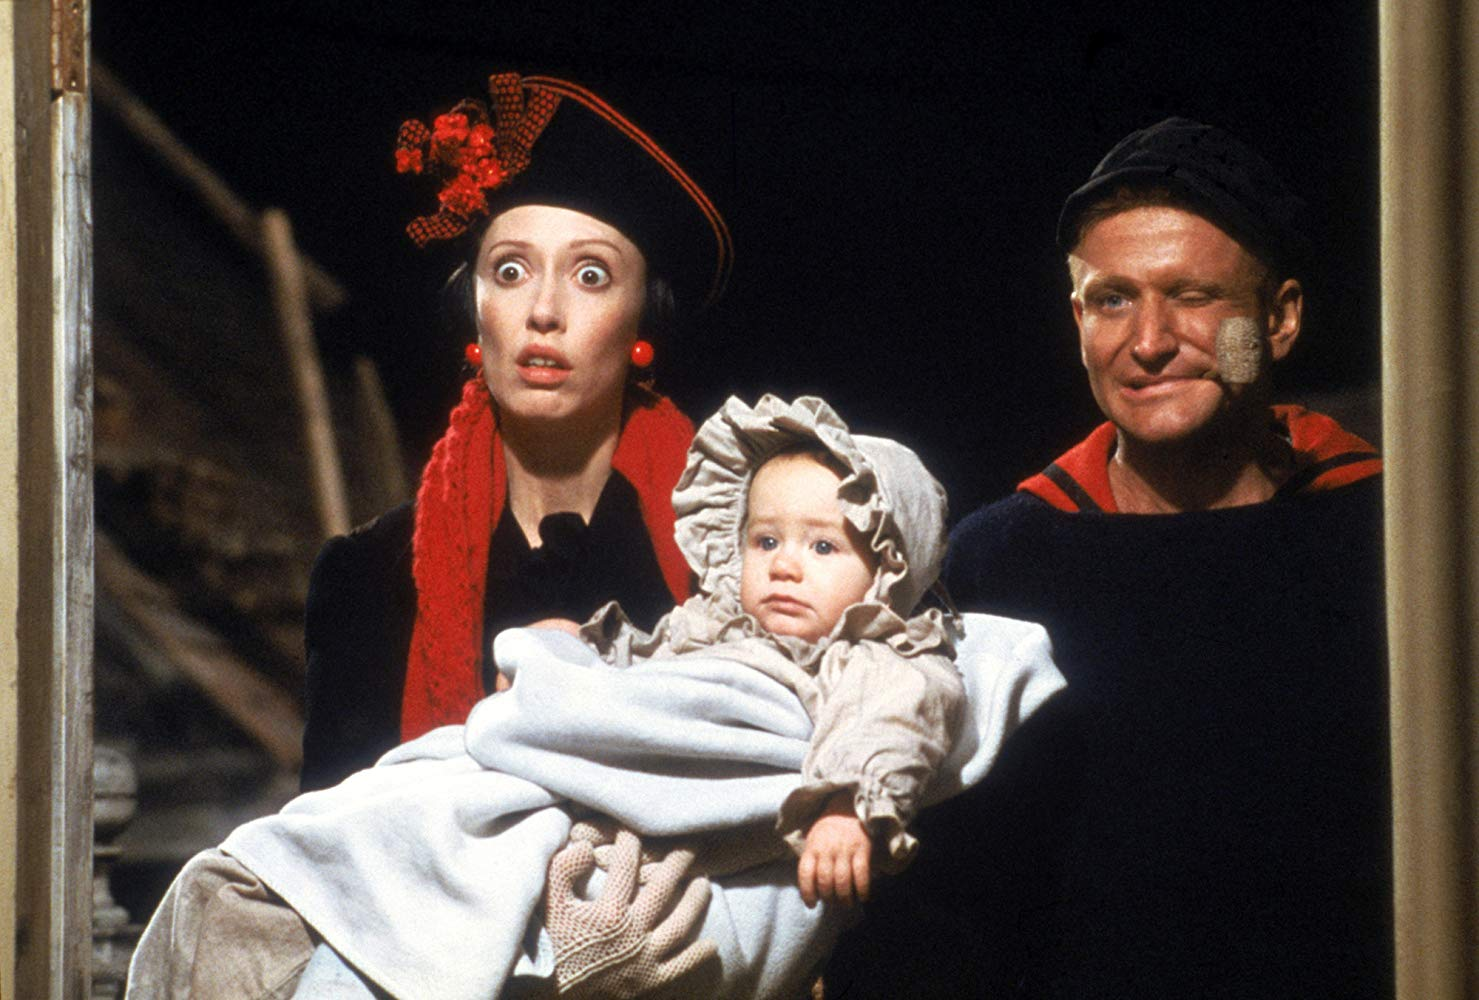 Olive Oyl (Shelley Duvall) and Popeye (Robin Williams) with baby Swee'pea (Wesley Ivan Hurt) in Popeye (1980)